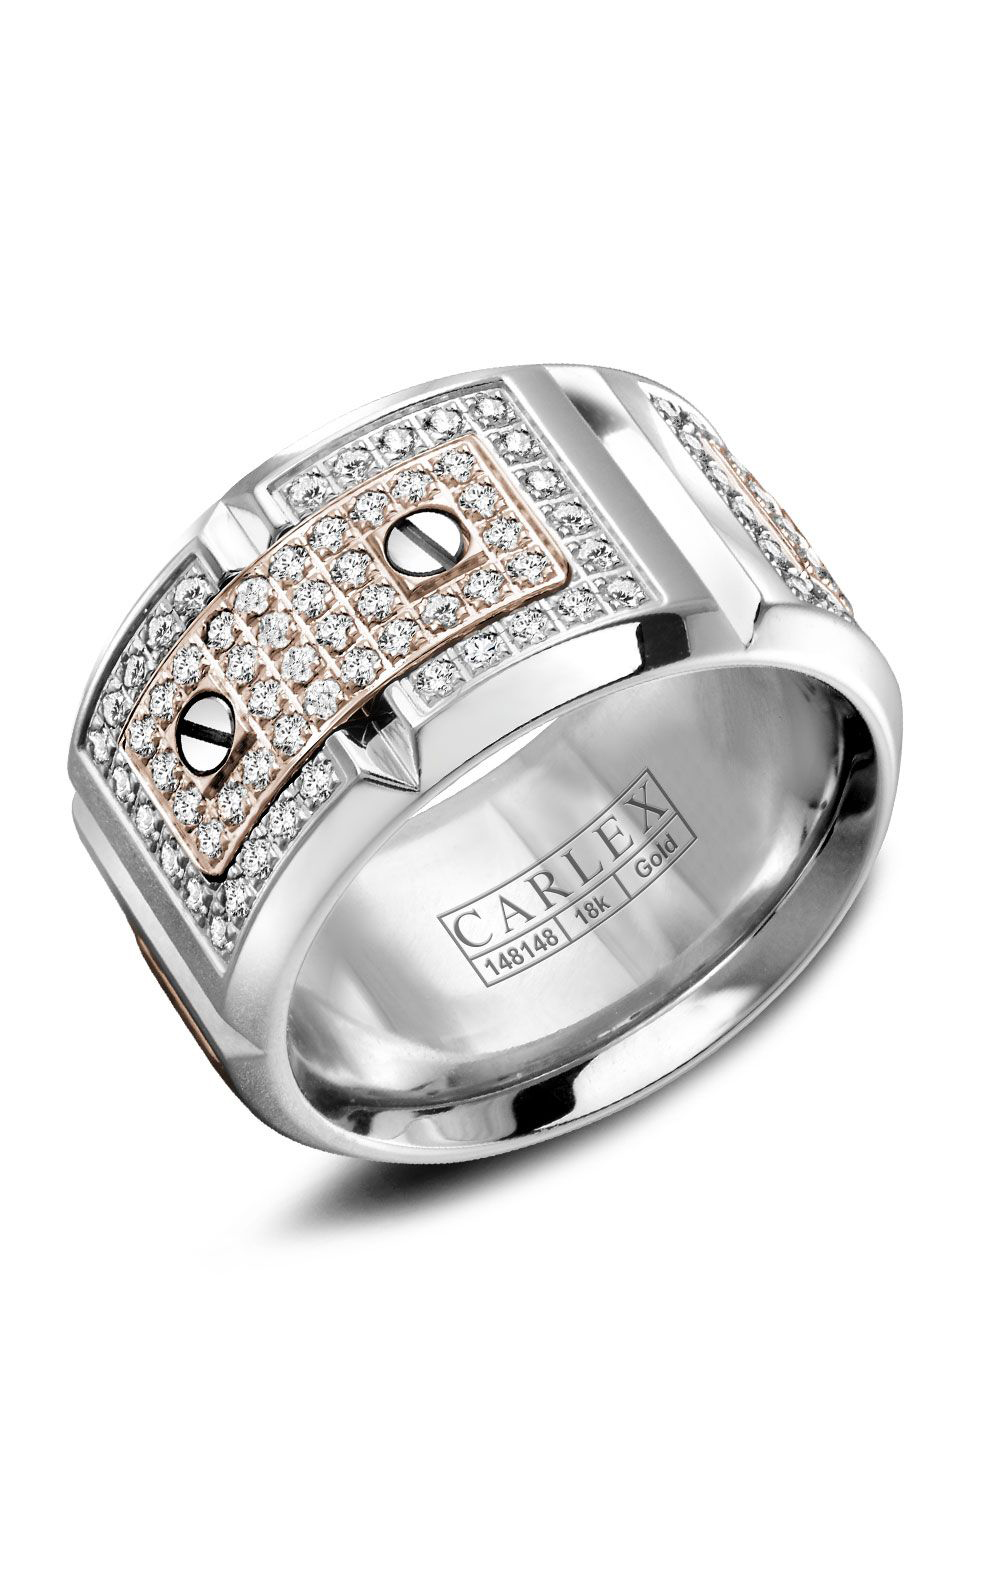 Carlex G2 Women's Wedding Band WB-9895RW product image